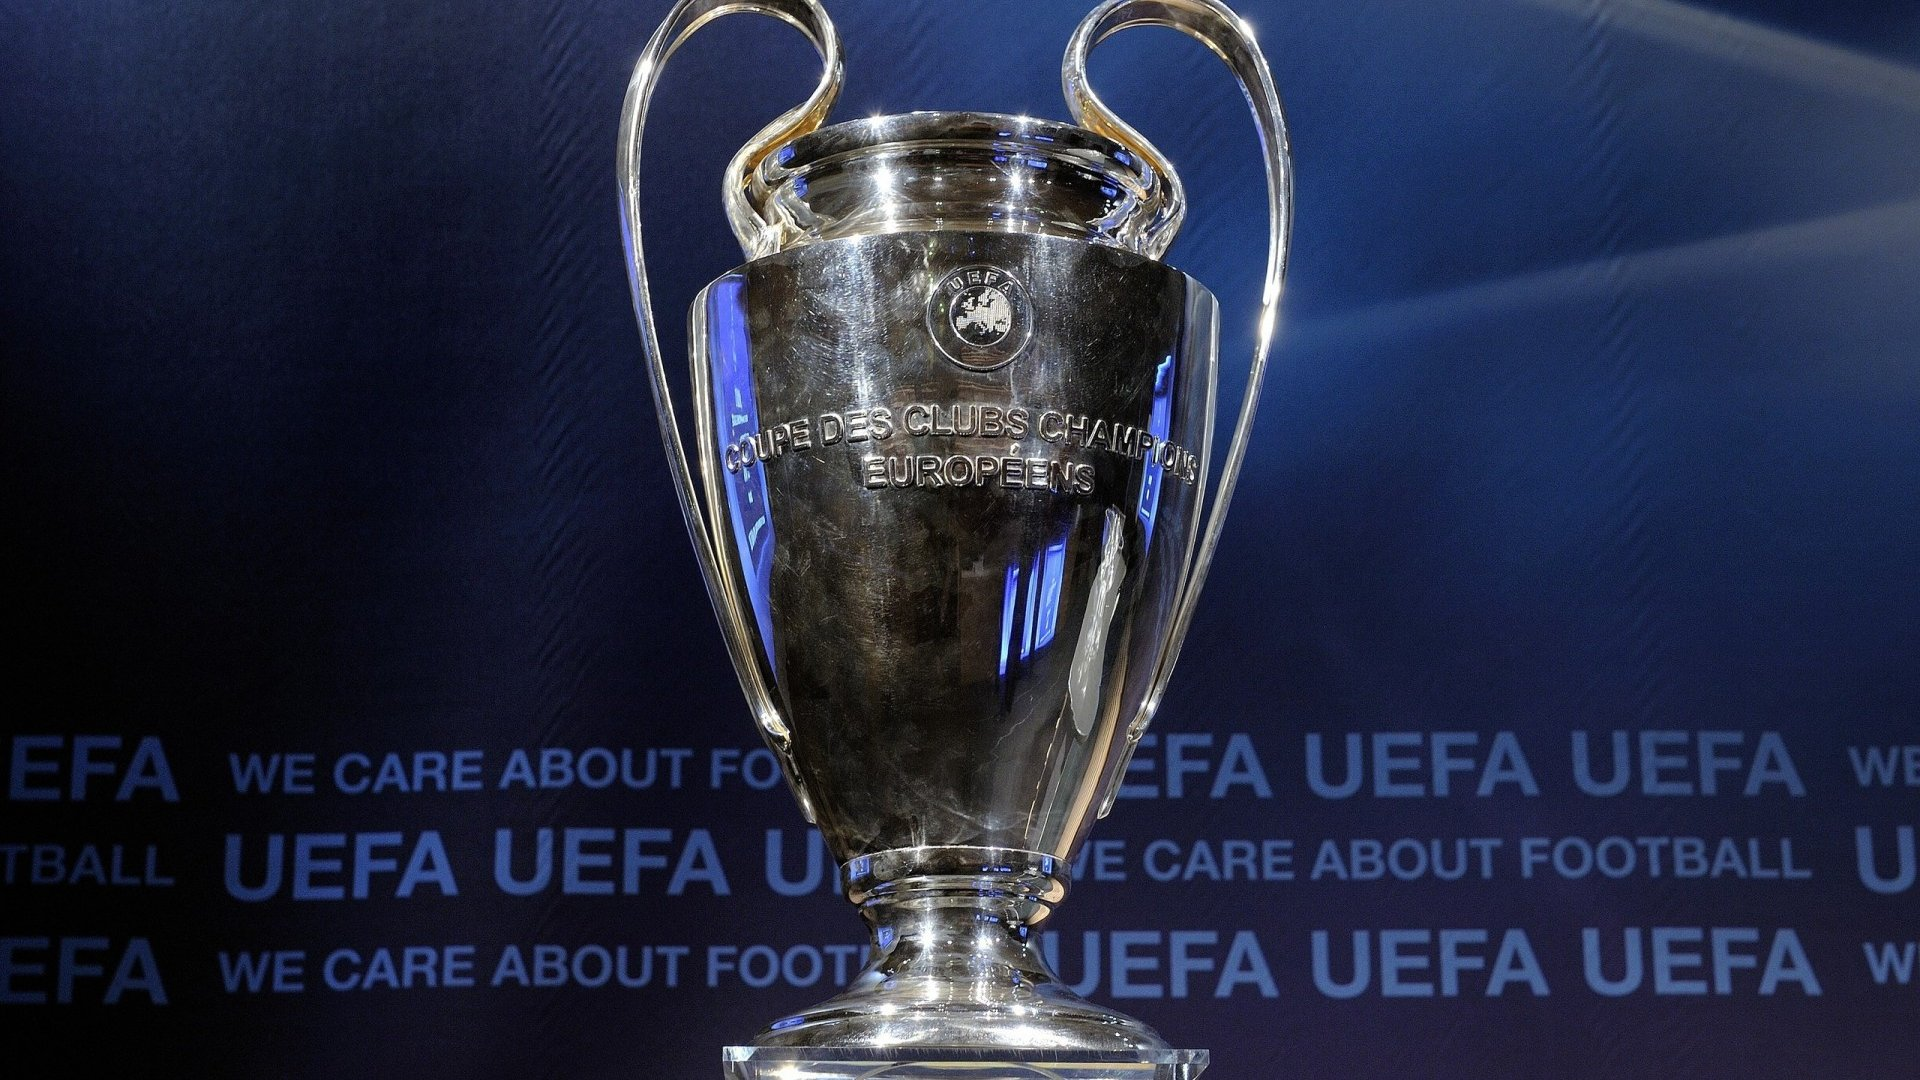 Top 5 Clubs Most Likely to Win UEFA Champions League, According to Latest Odds